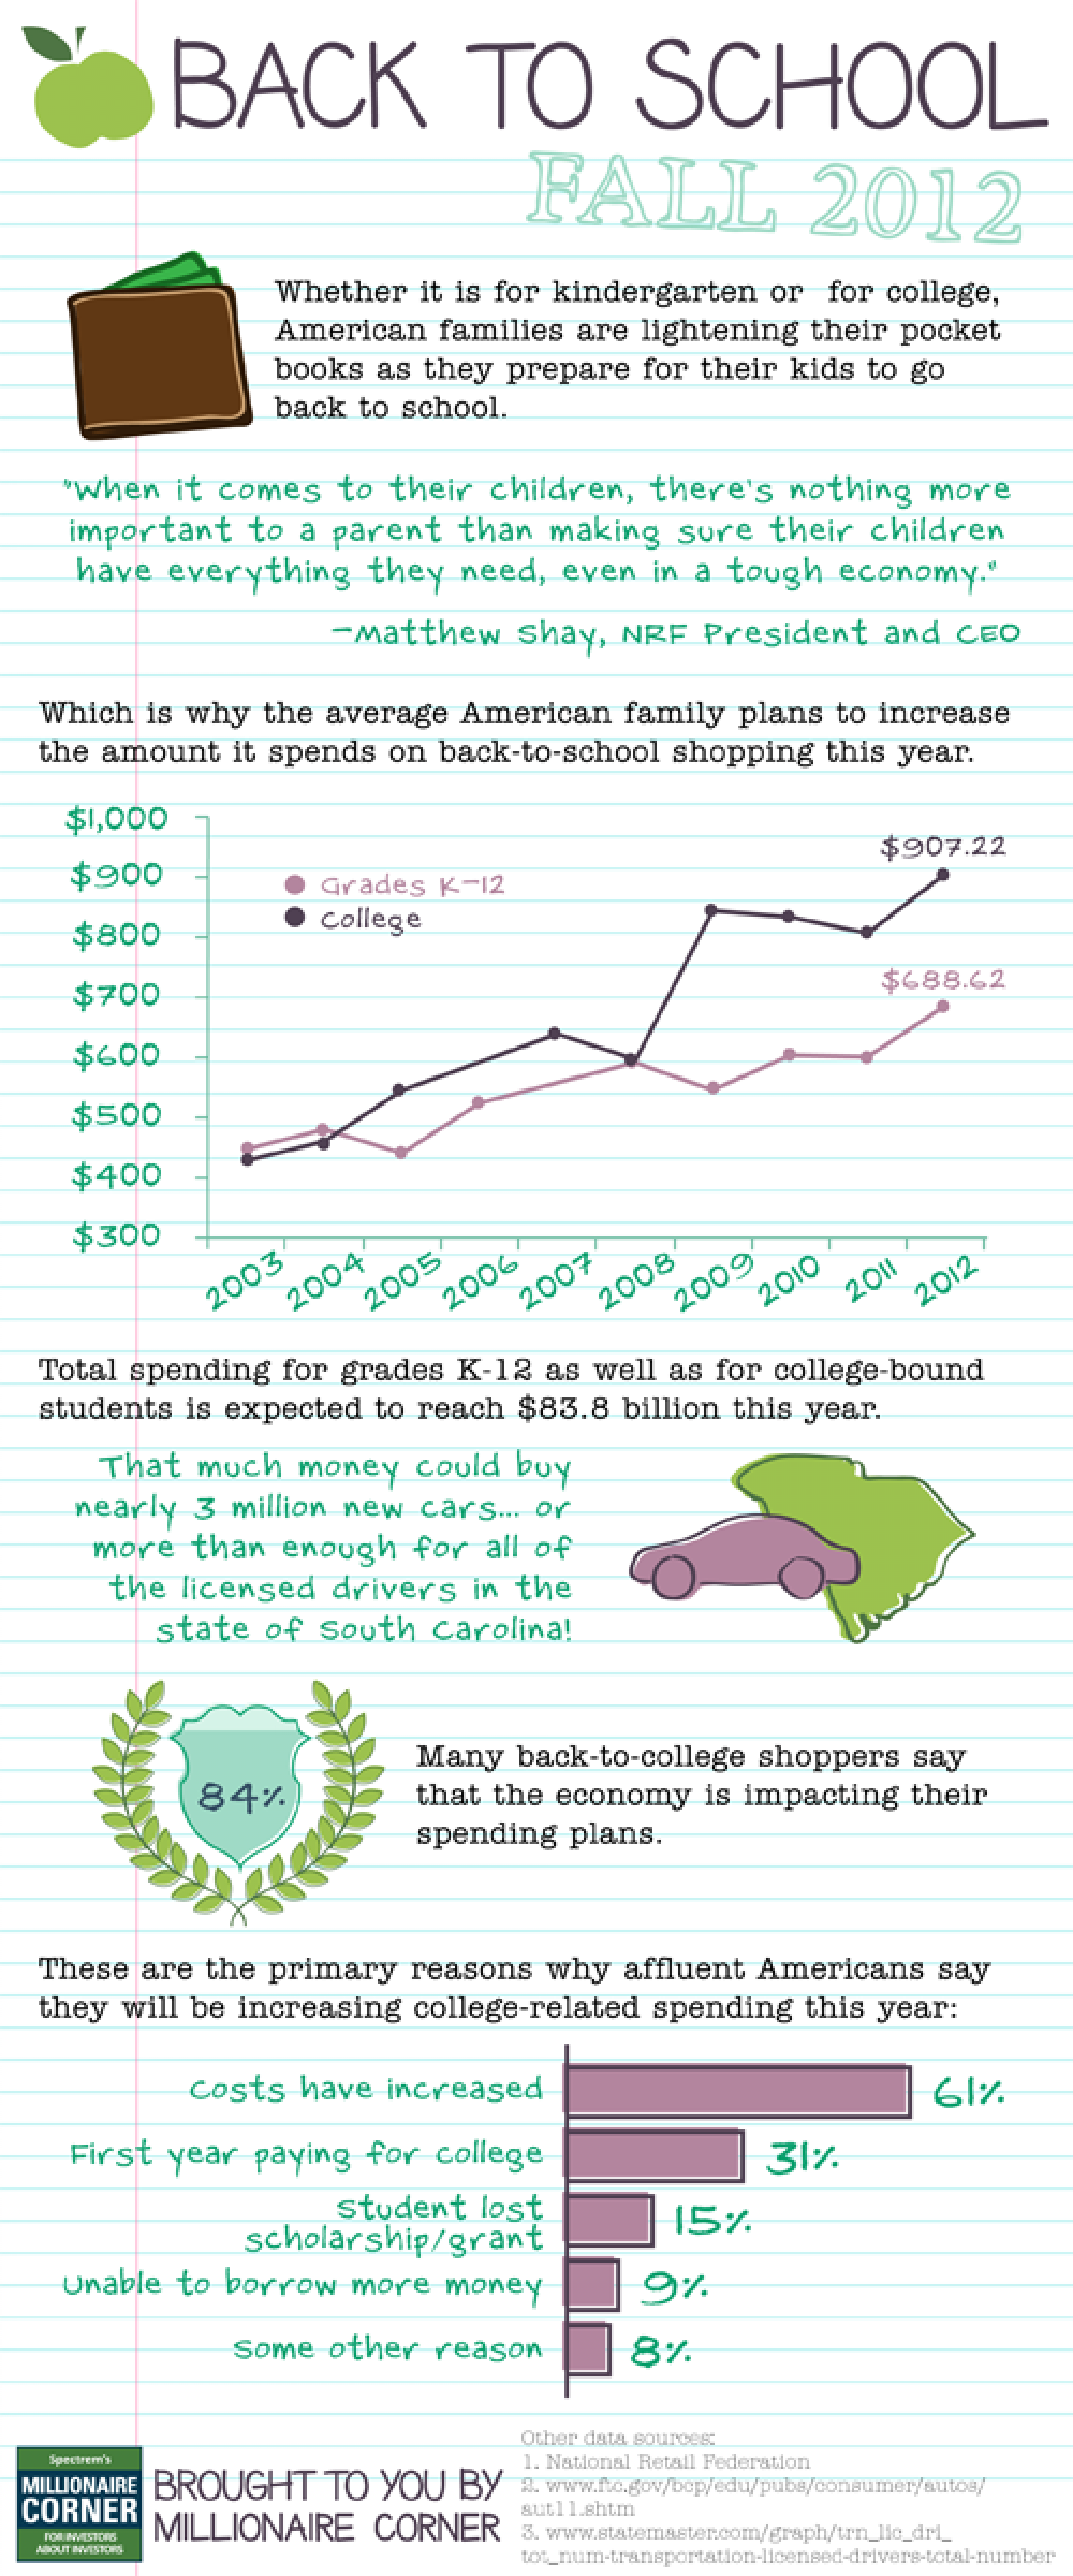 Back to School: Fall 2012 Infographic